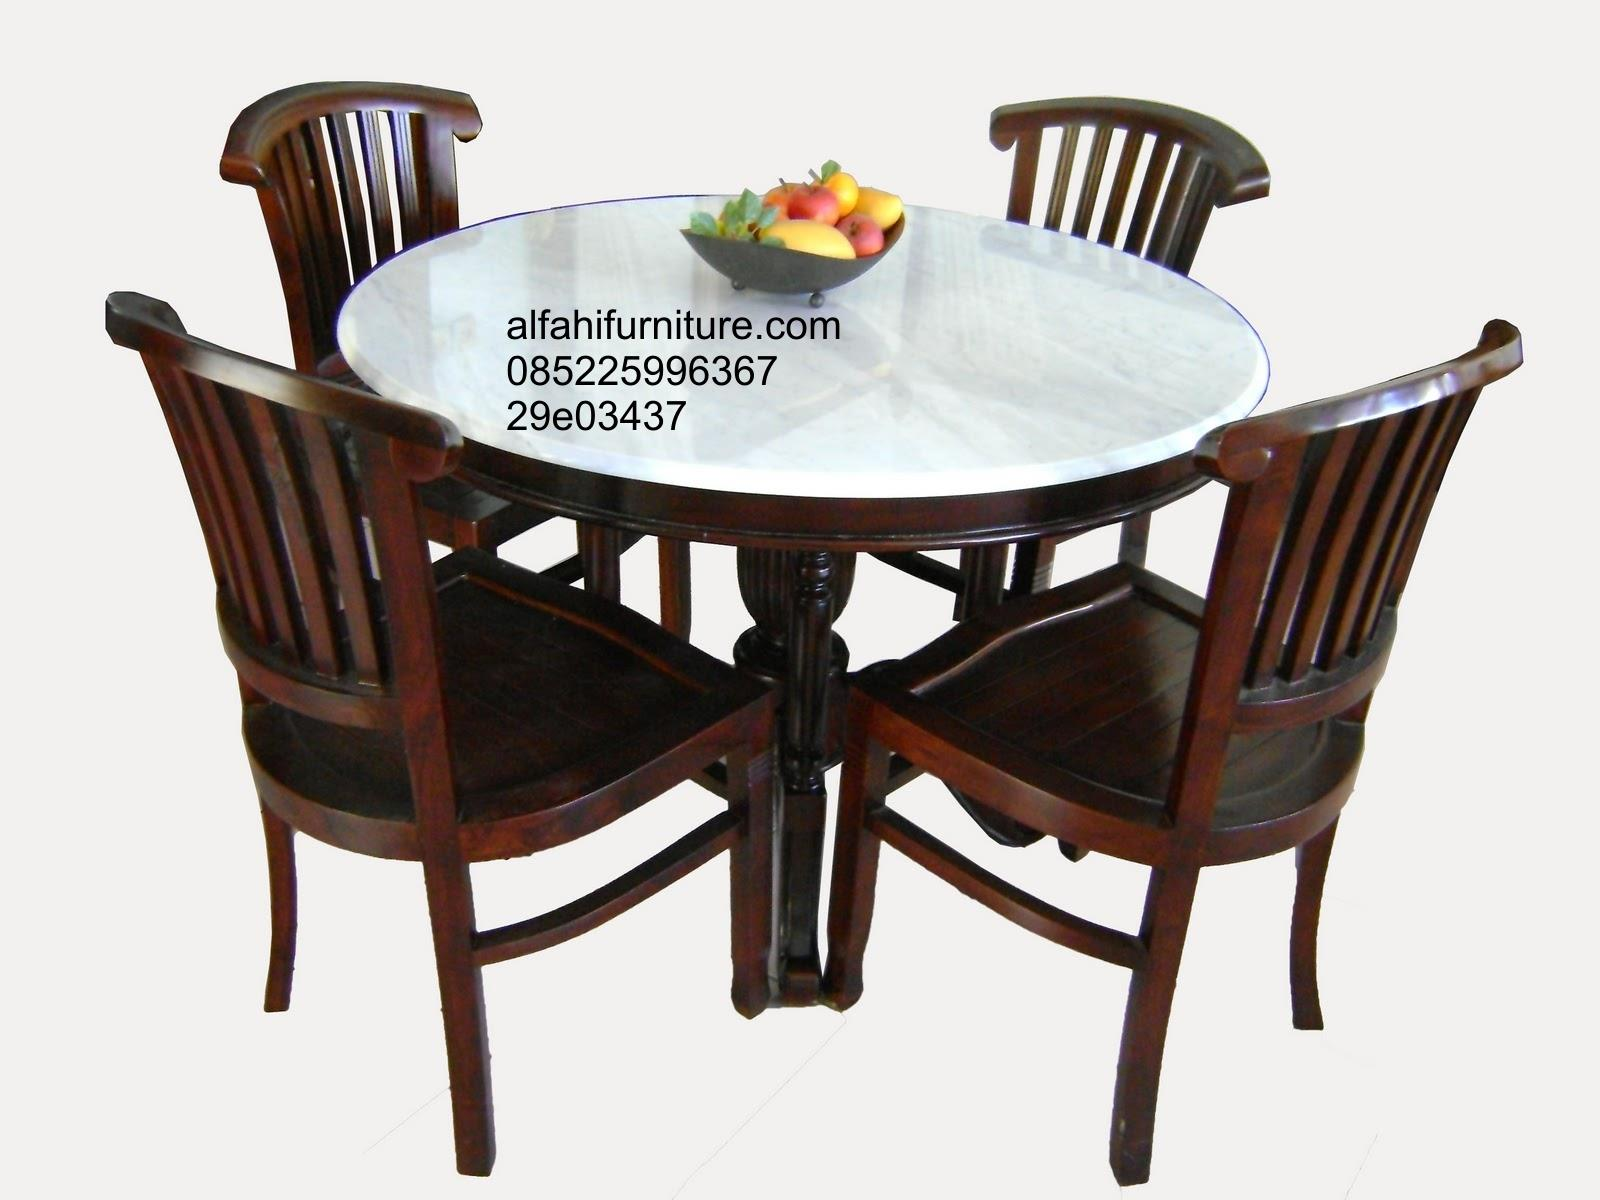 Sell Round Dining Table Set From Indonesia By Alfahi Furniture Cheap . Full resolution  portraiture, nominally Width 1600 Height 1200 pixels, portraiture with #A55C26.